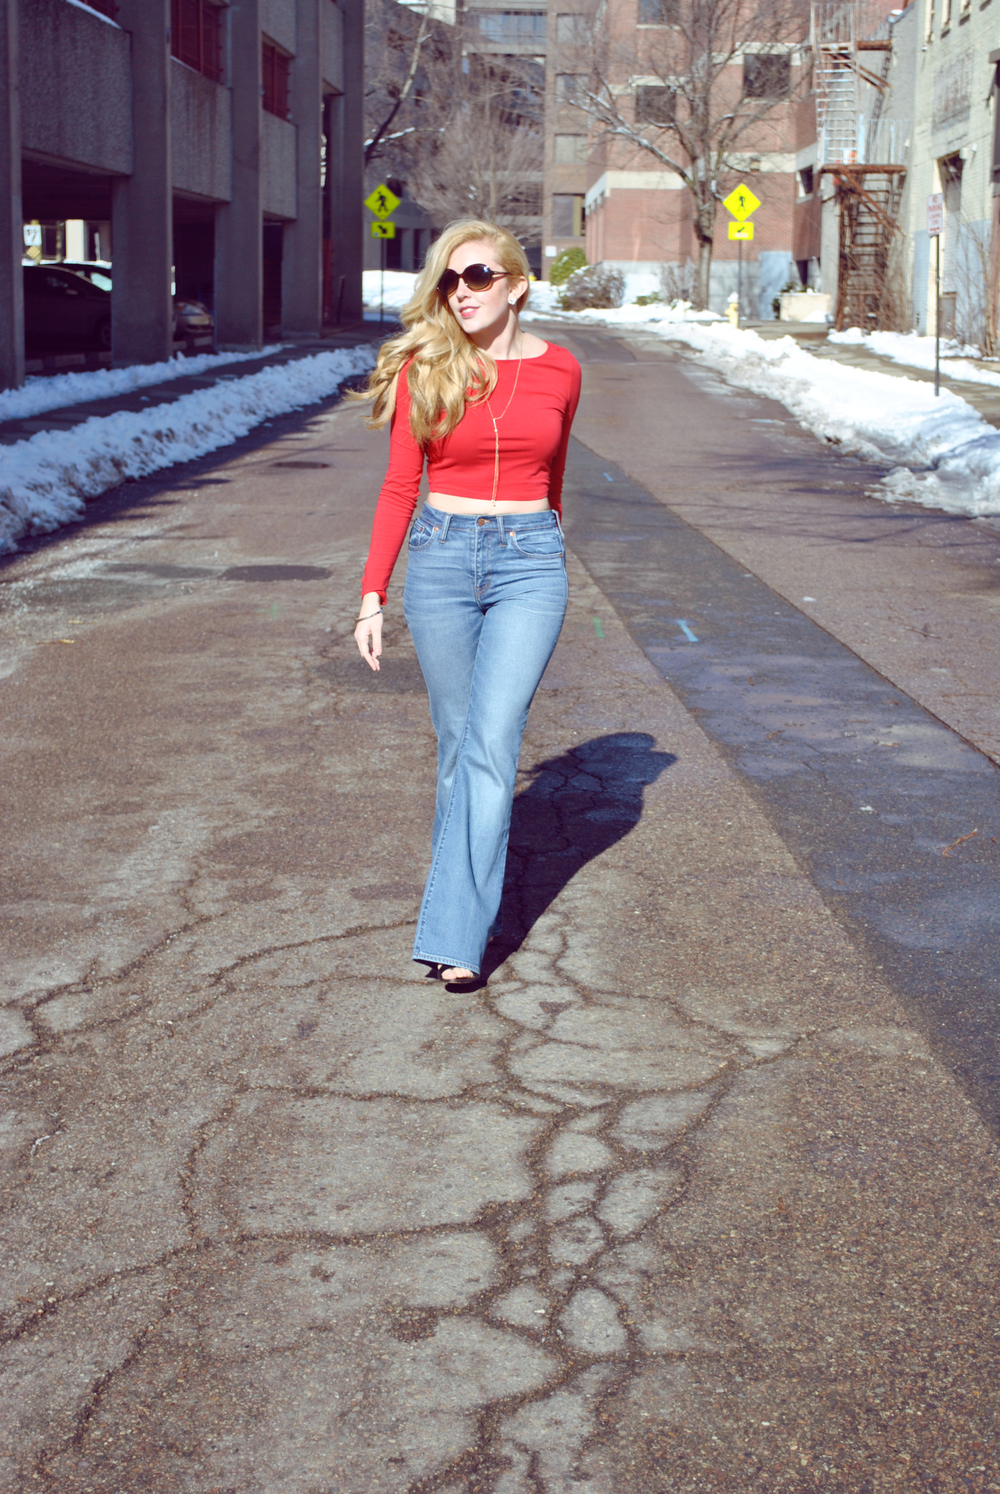 thoughtfulwish | fashion blogger // 70s style // diary of a teenage girl // bell bottoms // wide leg jeans // jeans // crop top // boston fashion // new england fashion